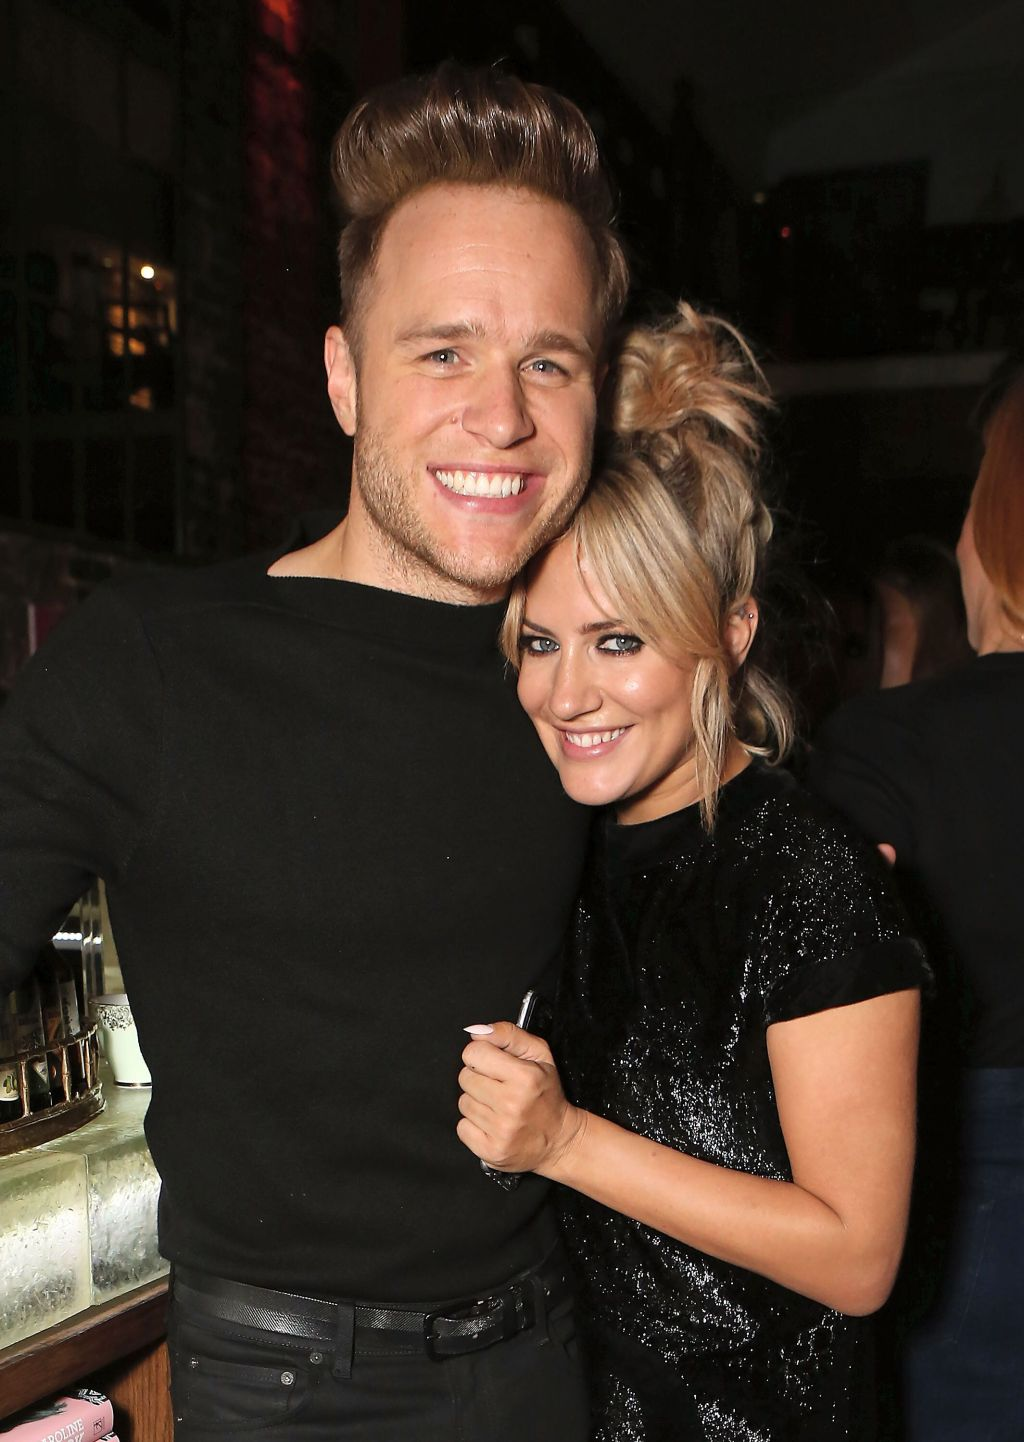 Olly Murs Says Caroline Flack's Death 'Still Hurts Every Day': 'There's A Massive Hole In My Life'